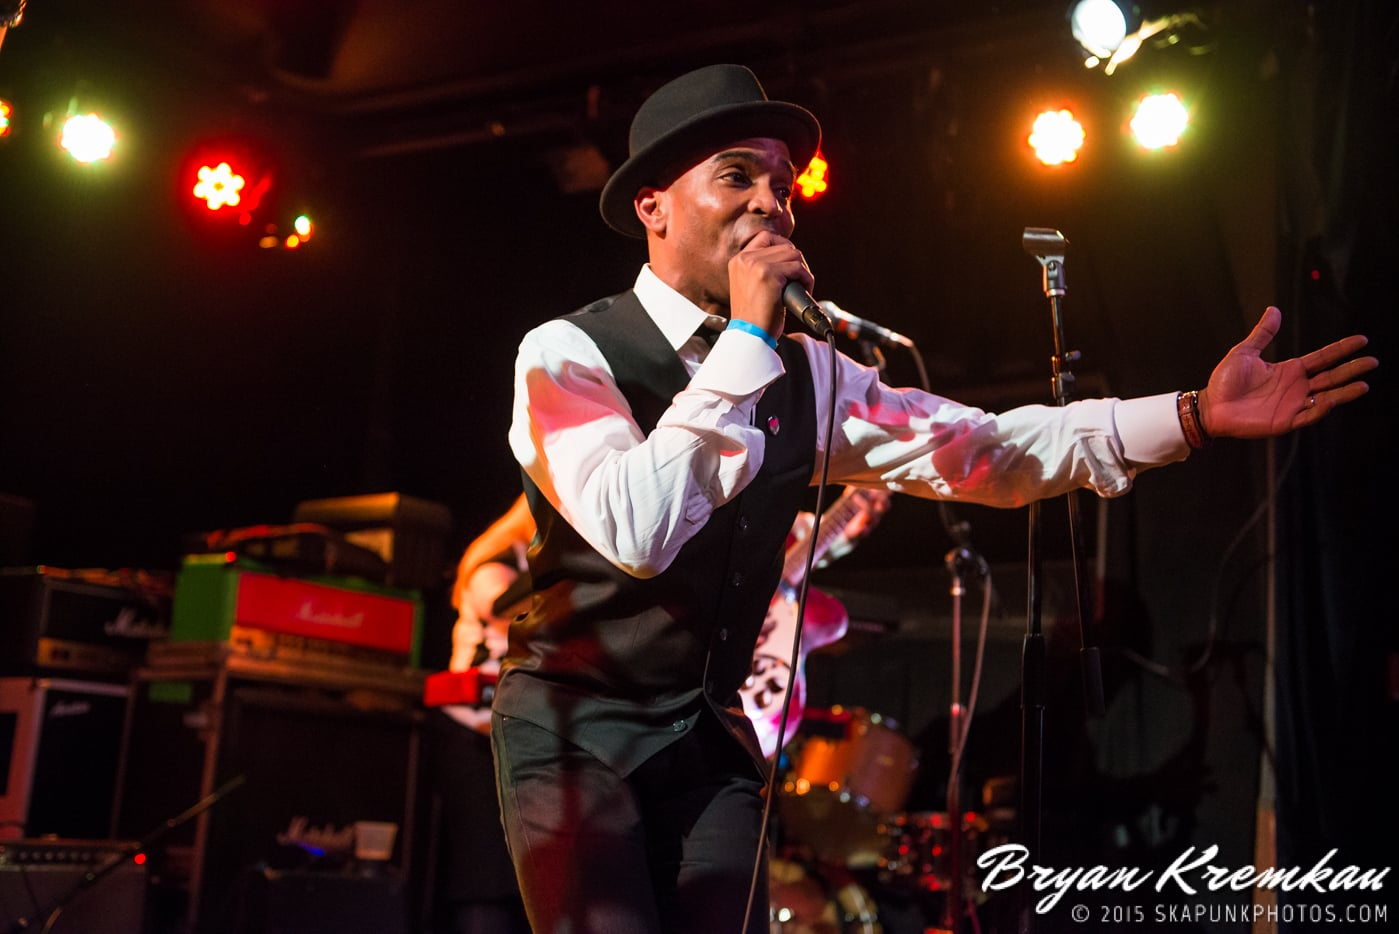 Rude Boy George @ Knitting Factory, Brooklyn, NY - 11.13.15 (7)